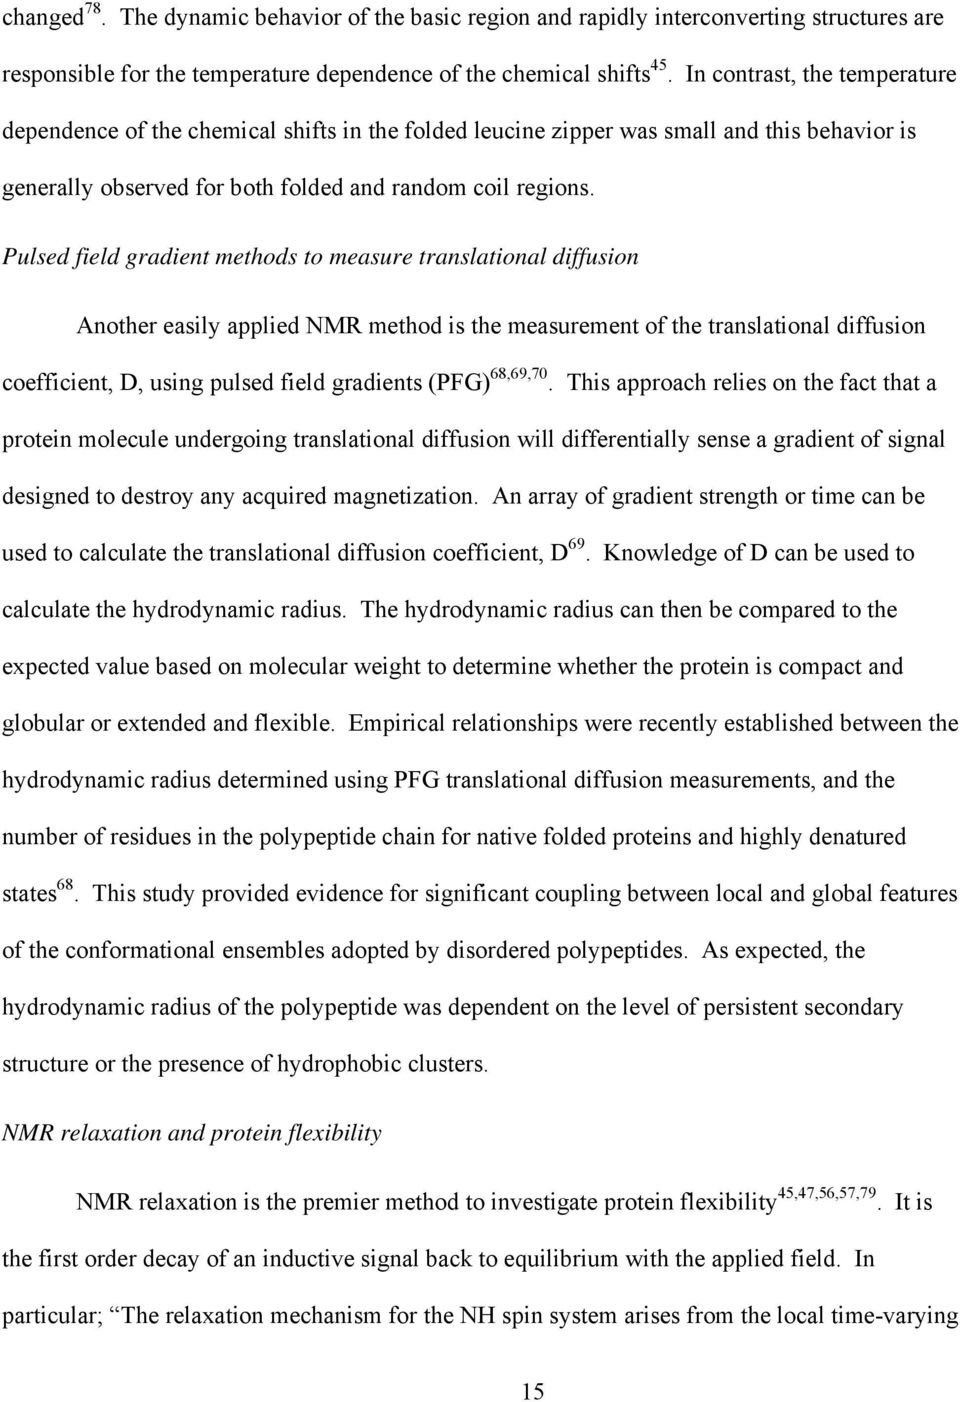 Pulsed field gradient methods to measure translational diffusion Another easily applied NMR method is the measurement of the translational diffusion coefficient, D, using pulsed field gradients (PFG)